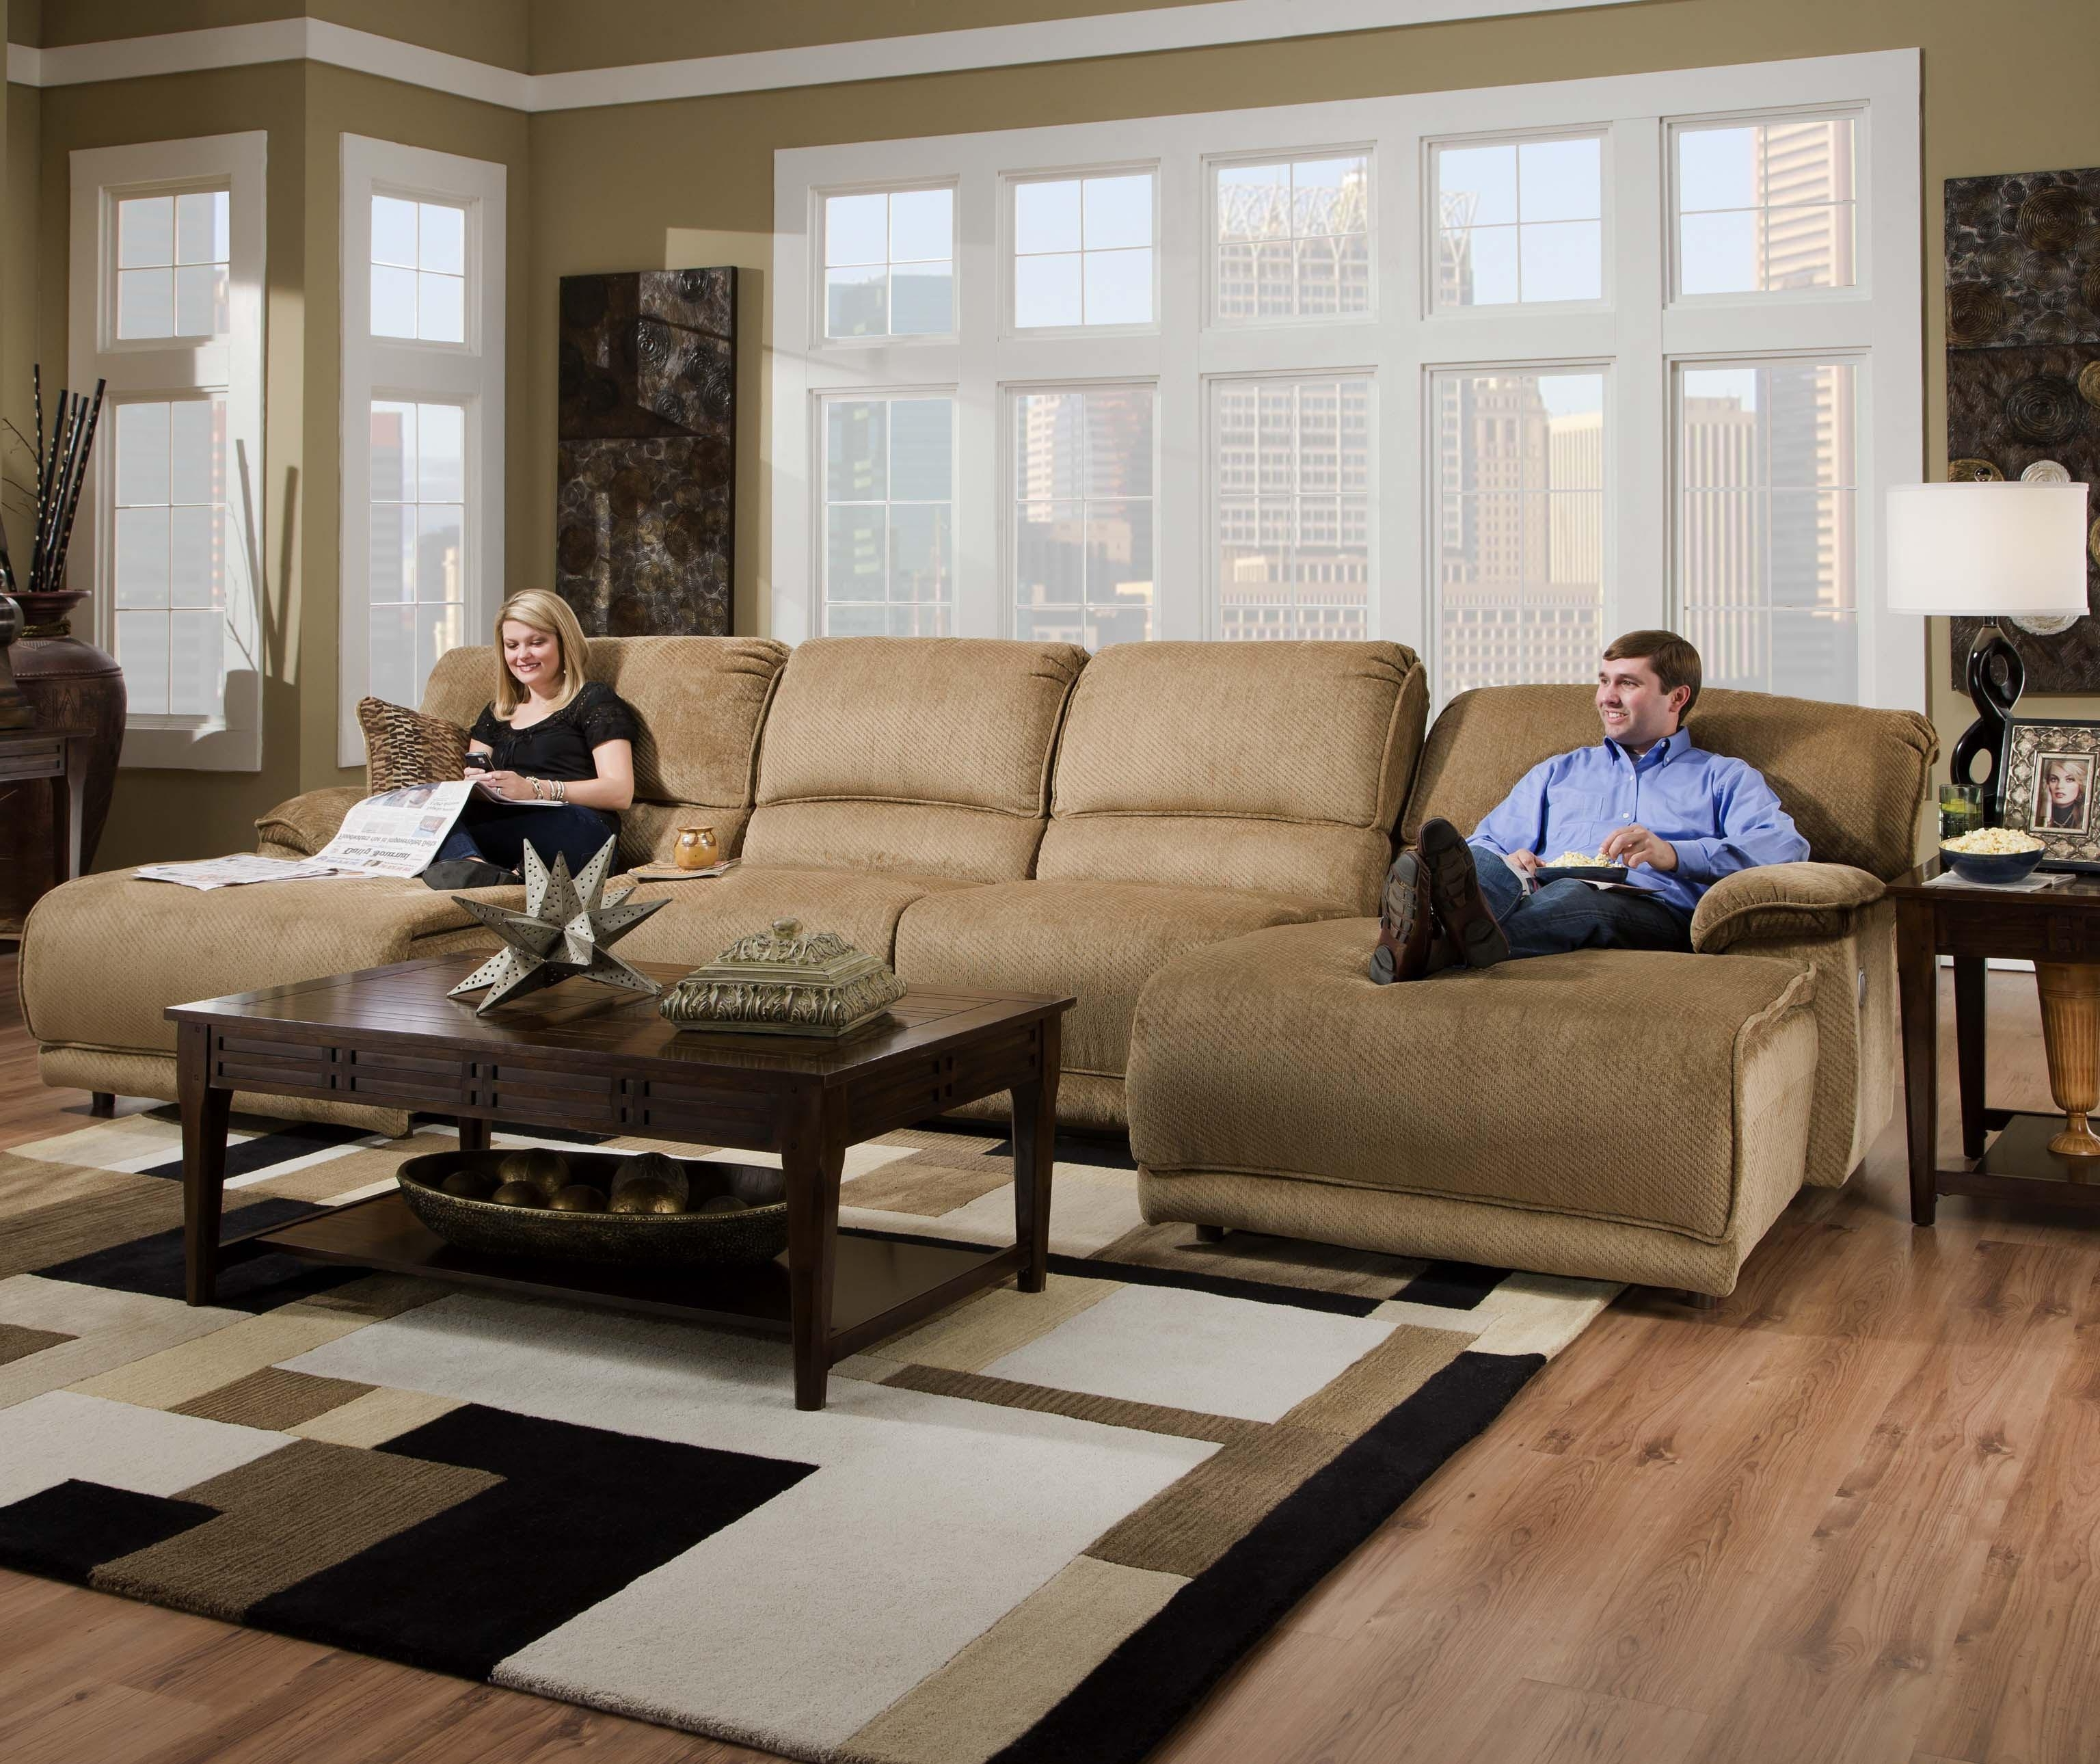 Reclining Sectional Sofas For Small Spaces Cheap Living Room Sets Within Widely Used Sectionals With Chaise And Recliner (View 12 of 15)